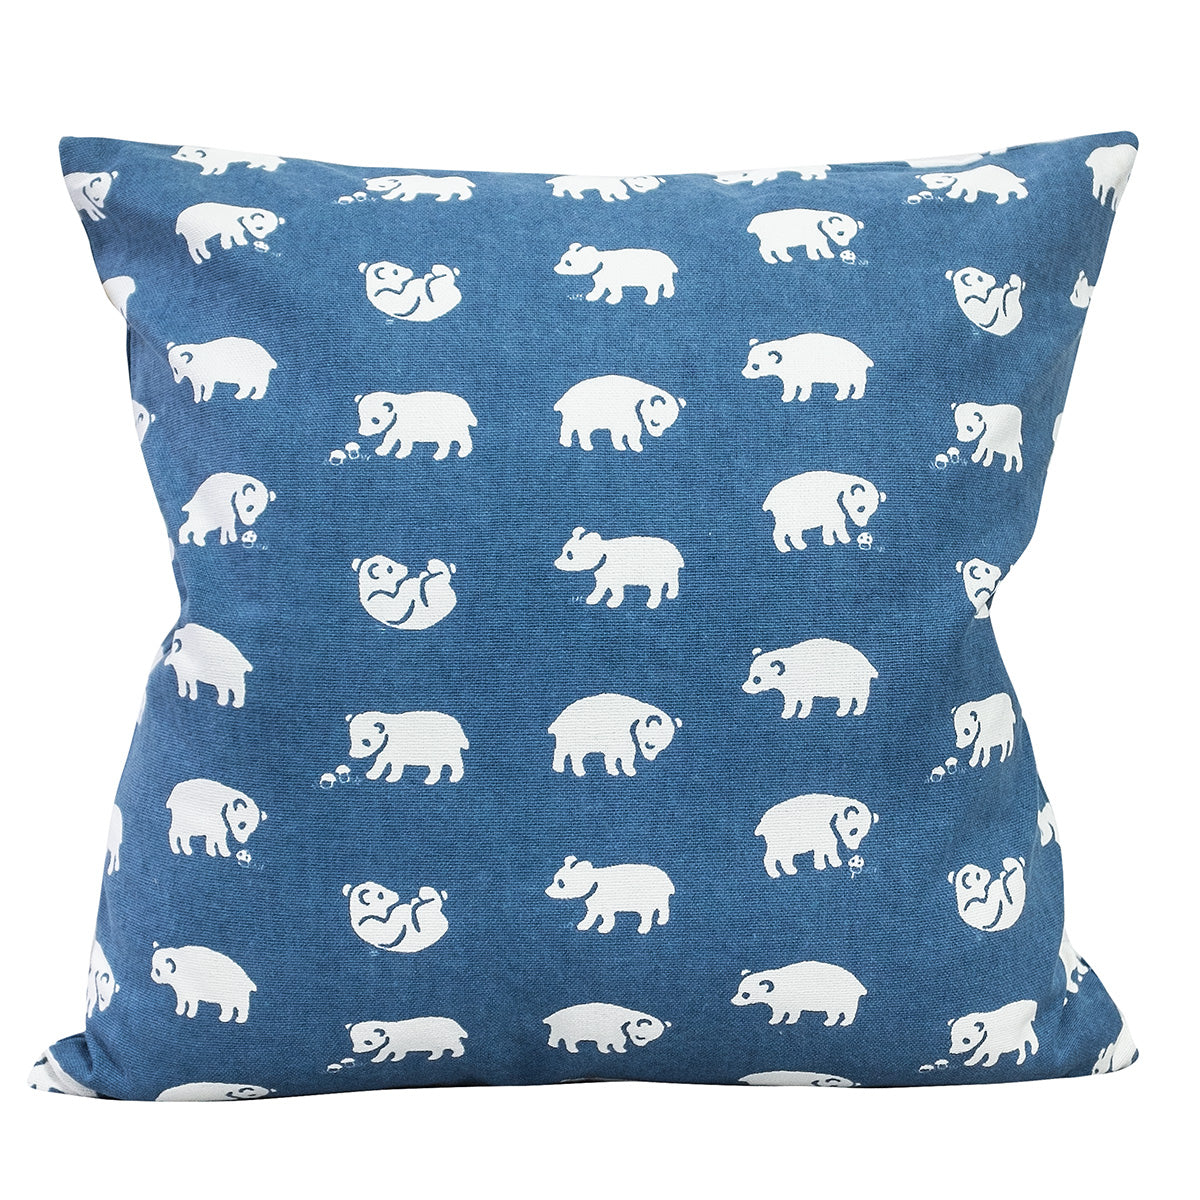 Fine Little Day - Bjorn Cushion Cover Blue - Cushion - Nordic Living